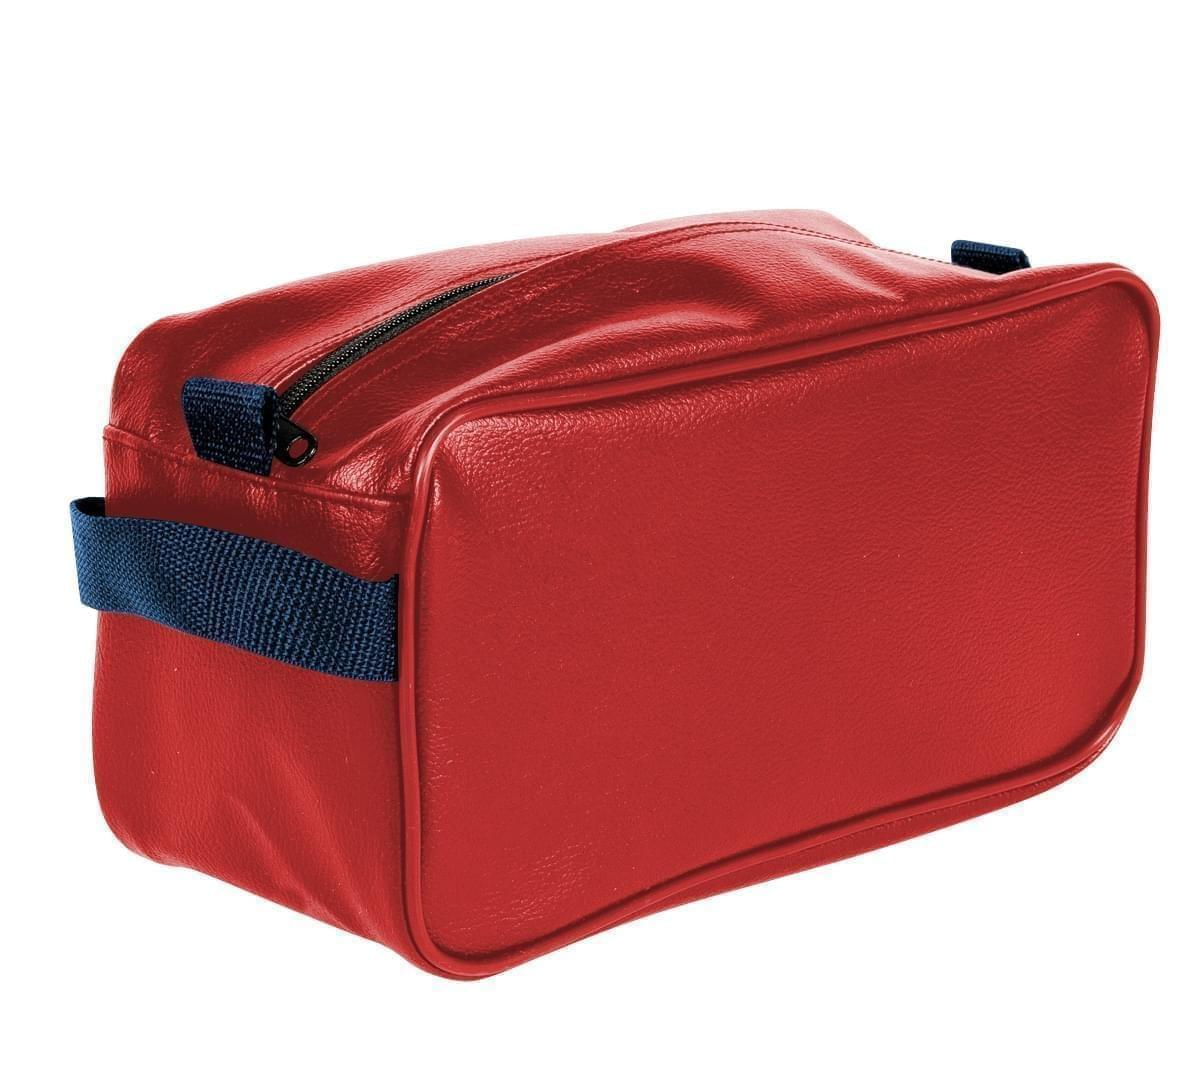 USA Made Cosmetic & Toiletry Cases, Red-Navy, 3000996-AZZ